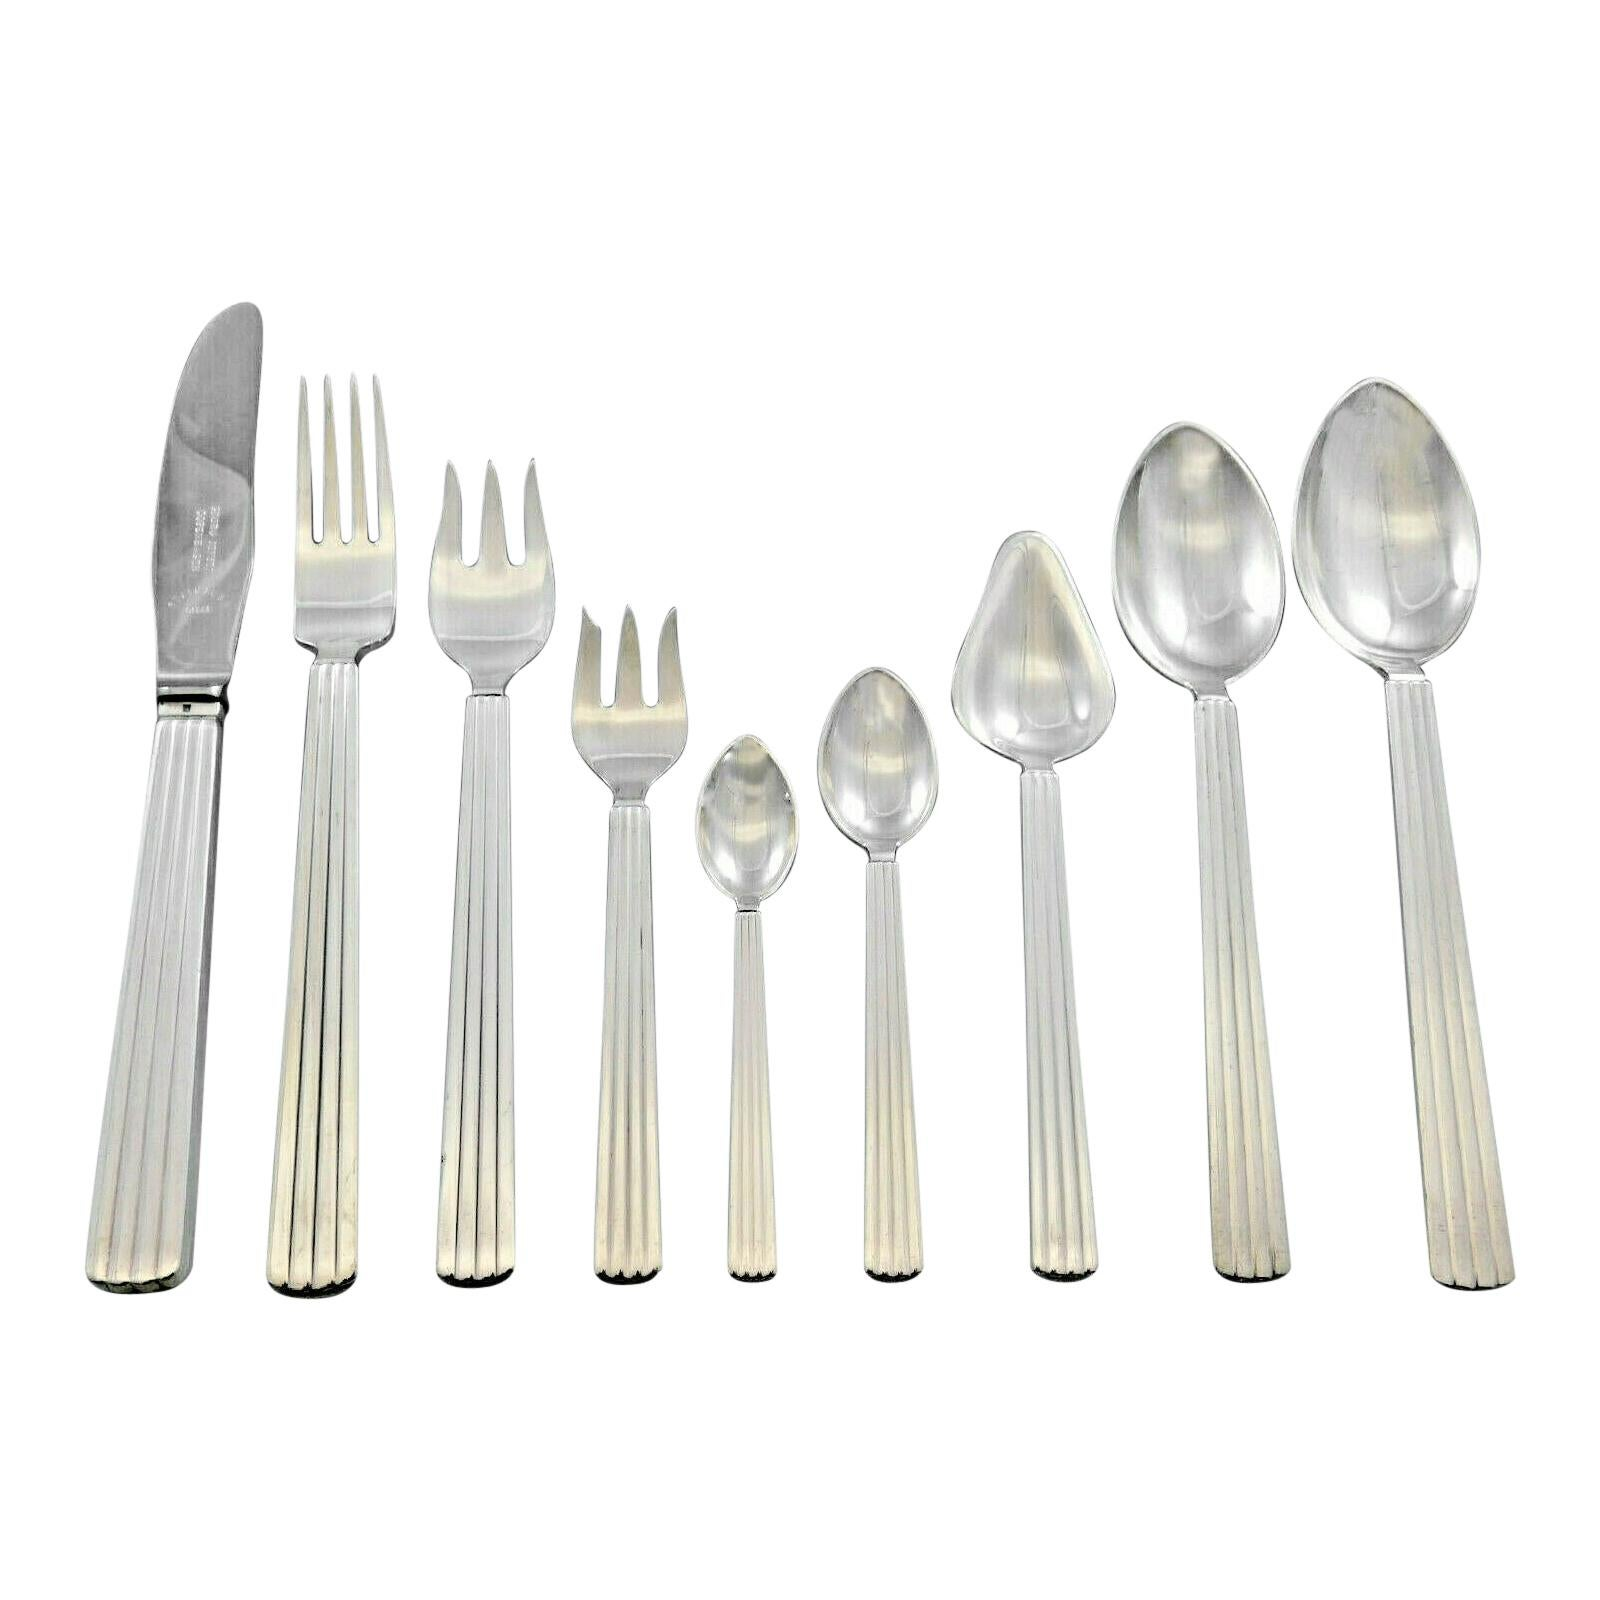 Silver Cutlery Sets - 274 For Sale on 1stdibs